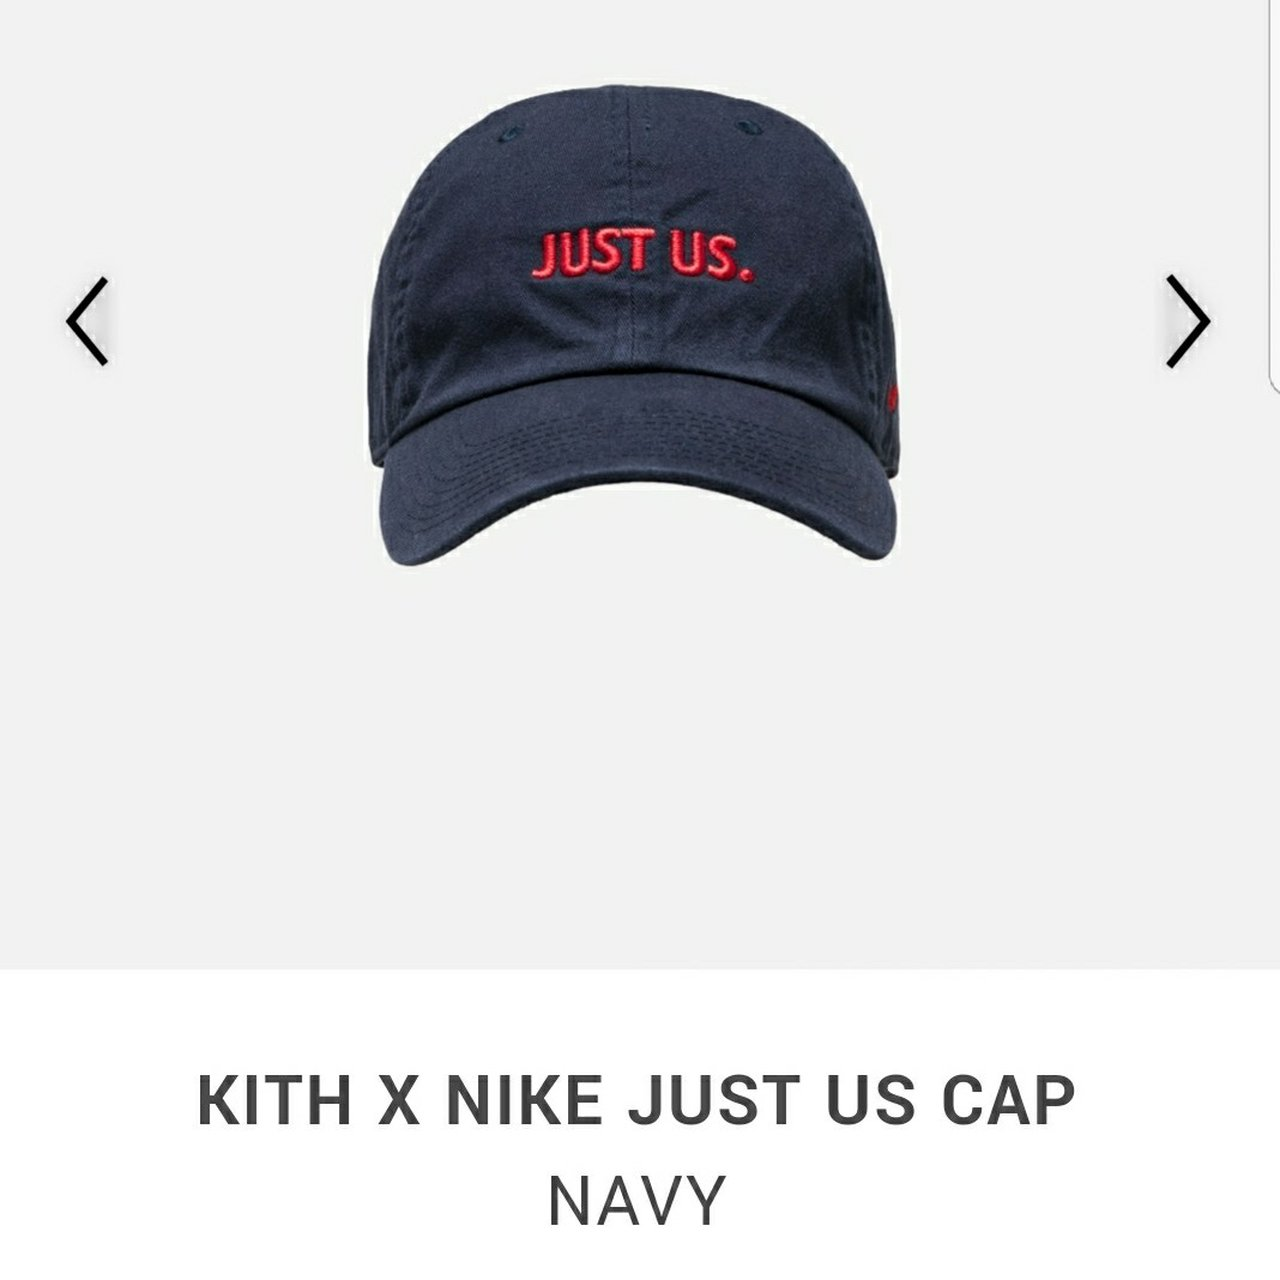 Kith x Nike Take Flight Collection Just Us Cap Hat Navy - Depop 26053e24e68